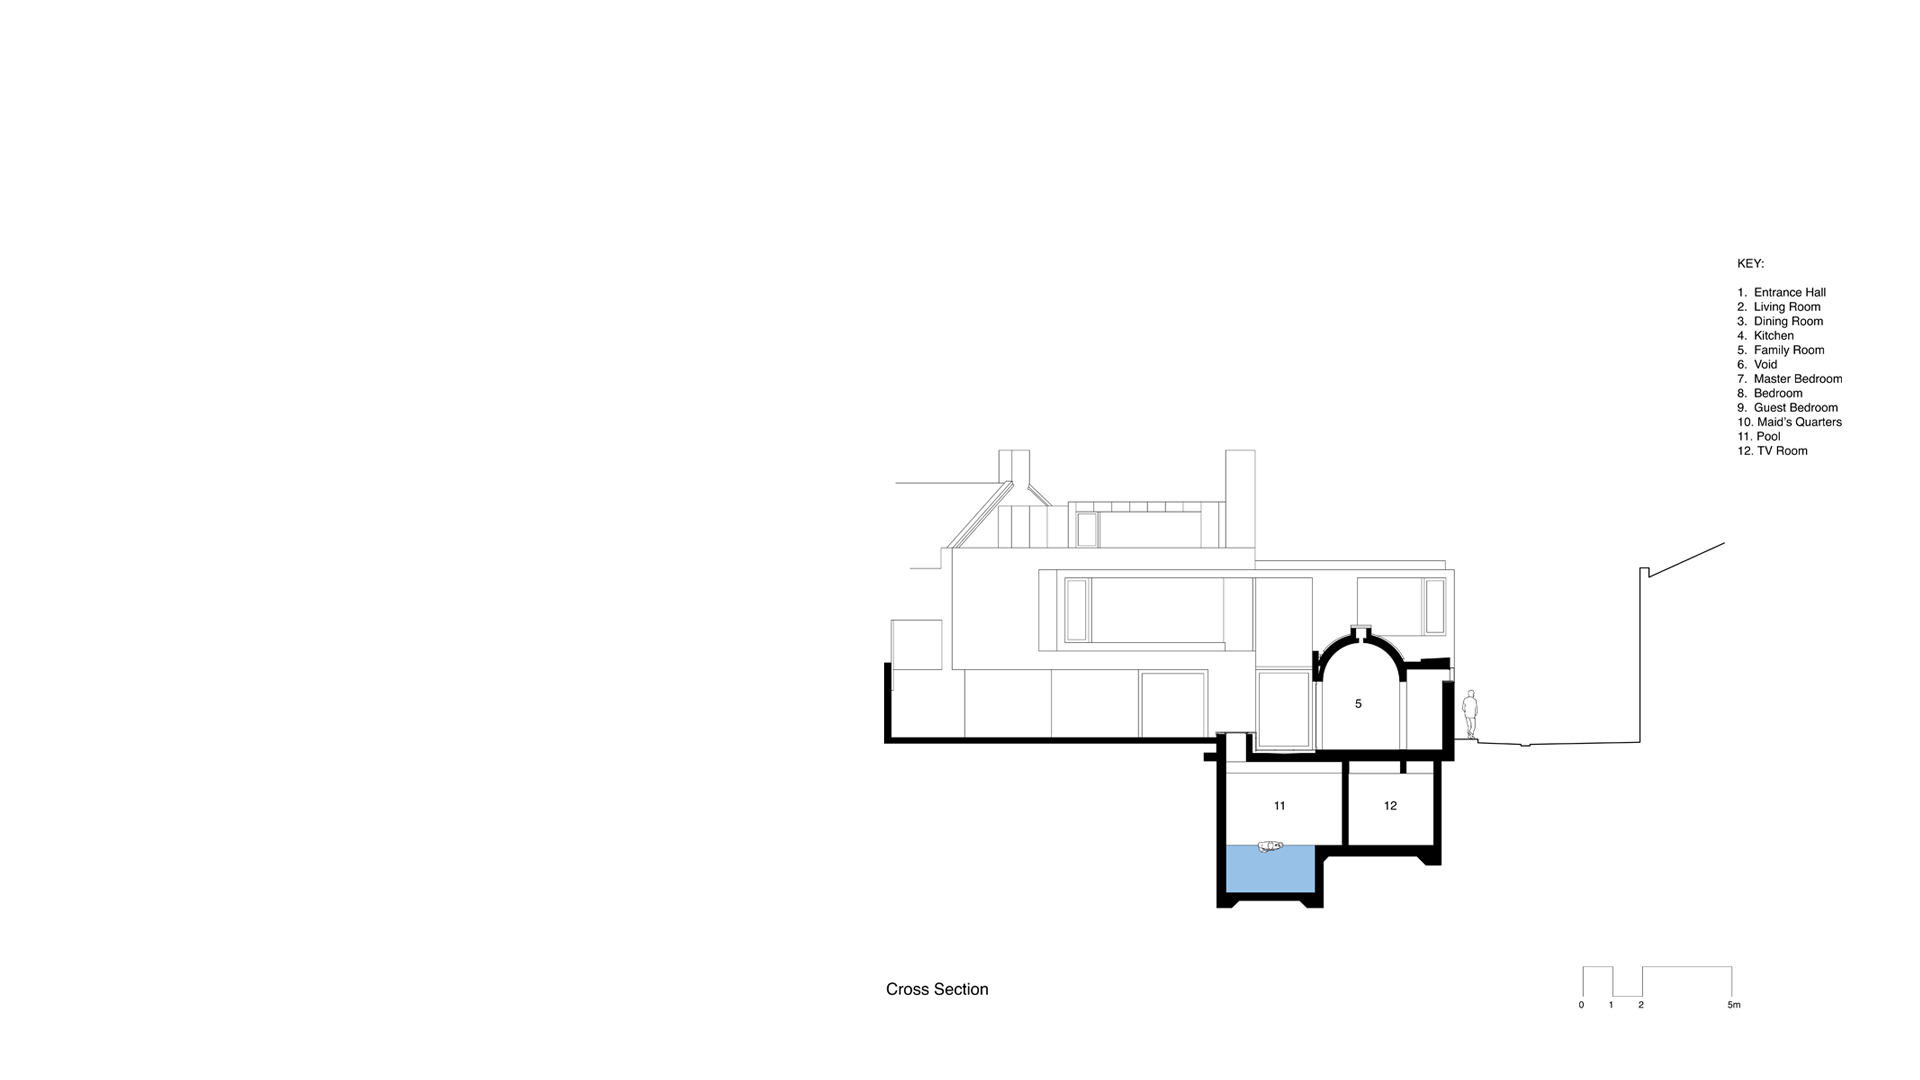 Cross section through the Long House showing the subterranean swimming pool.